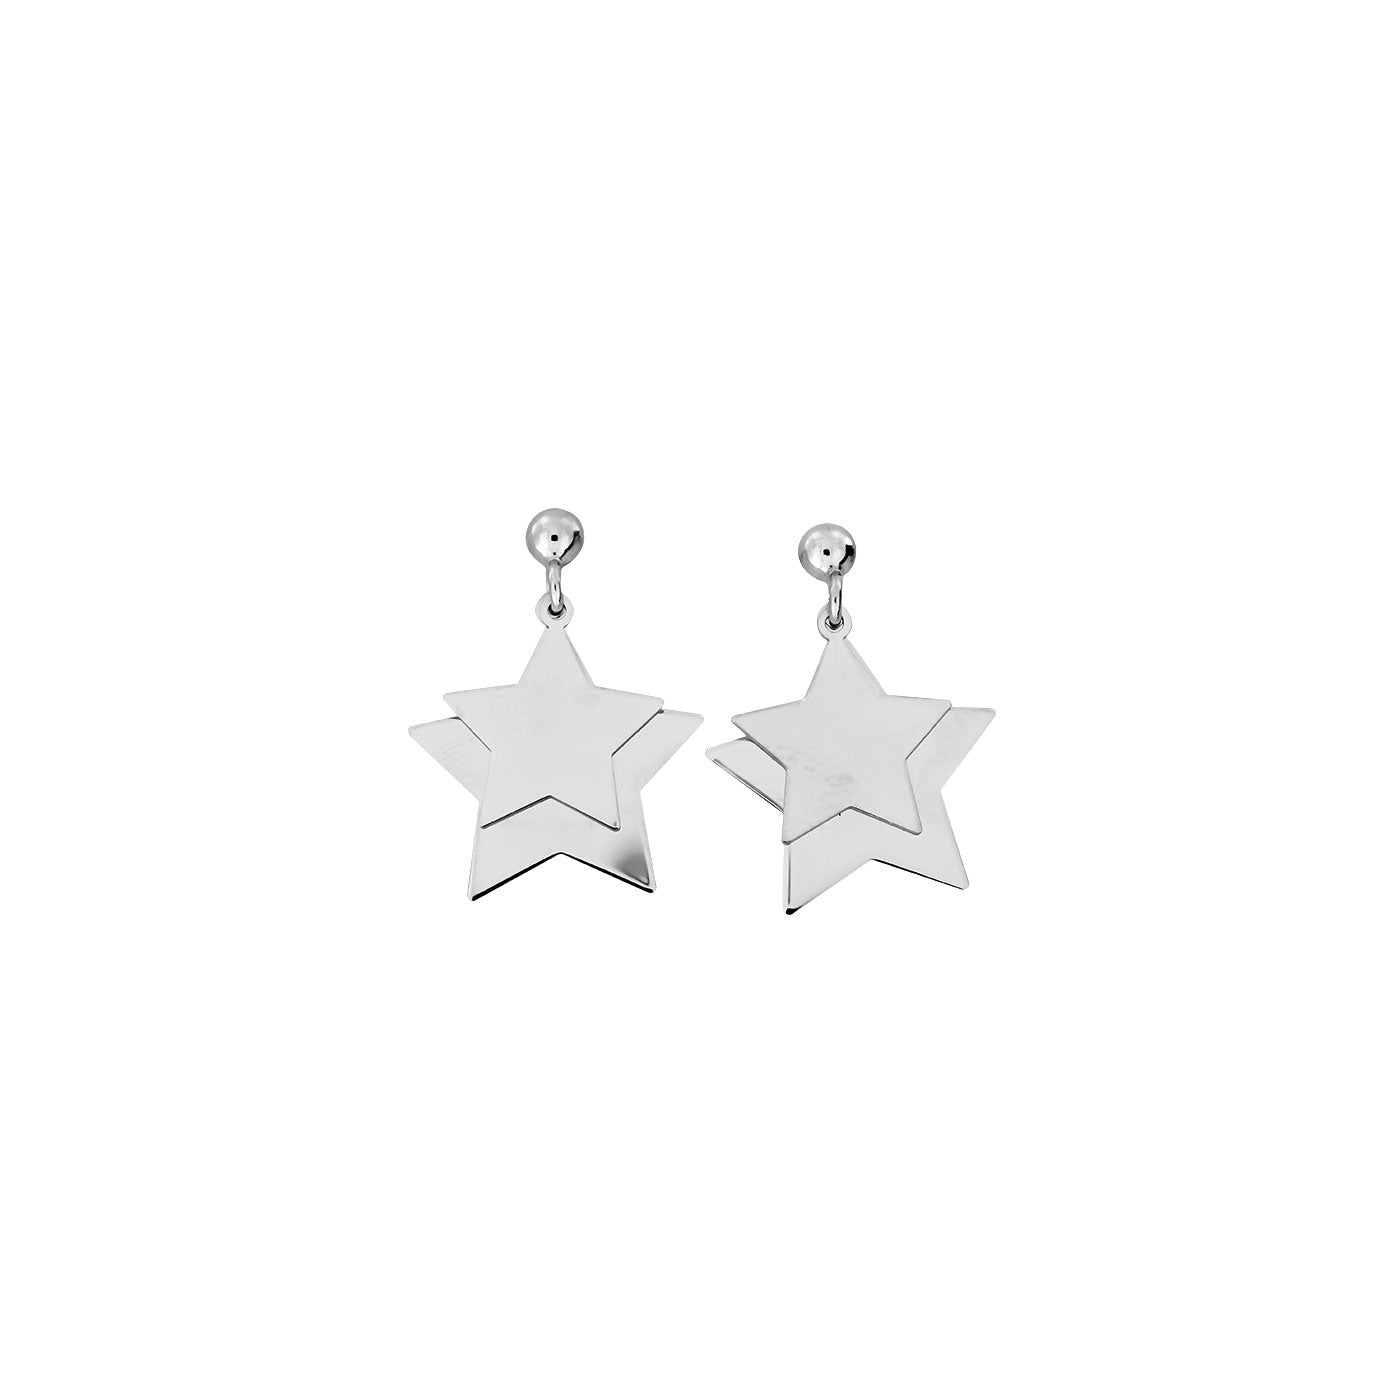 Twin Star Drop Earrings